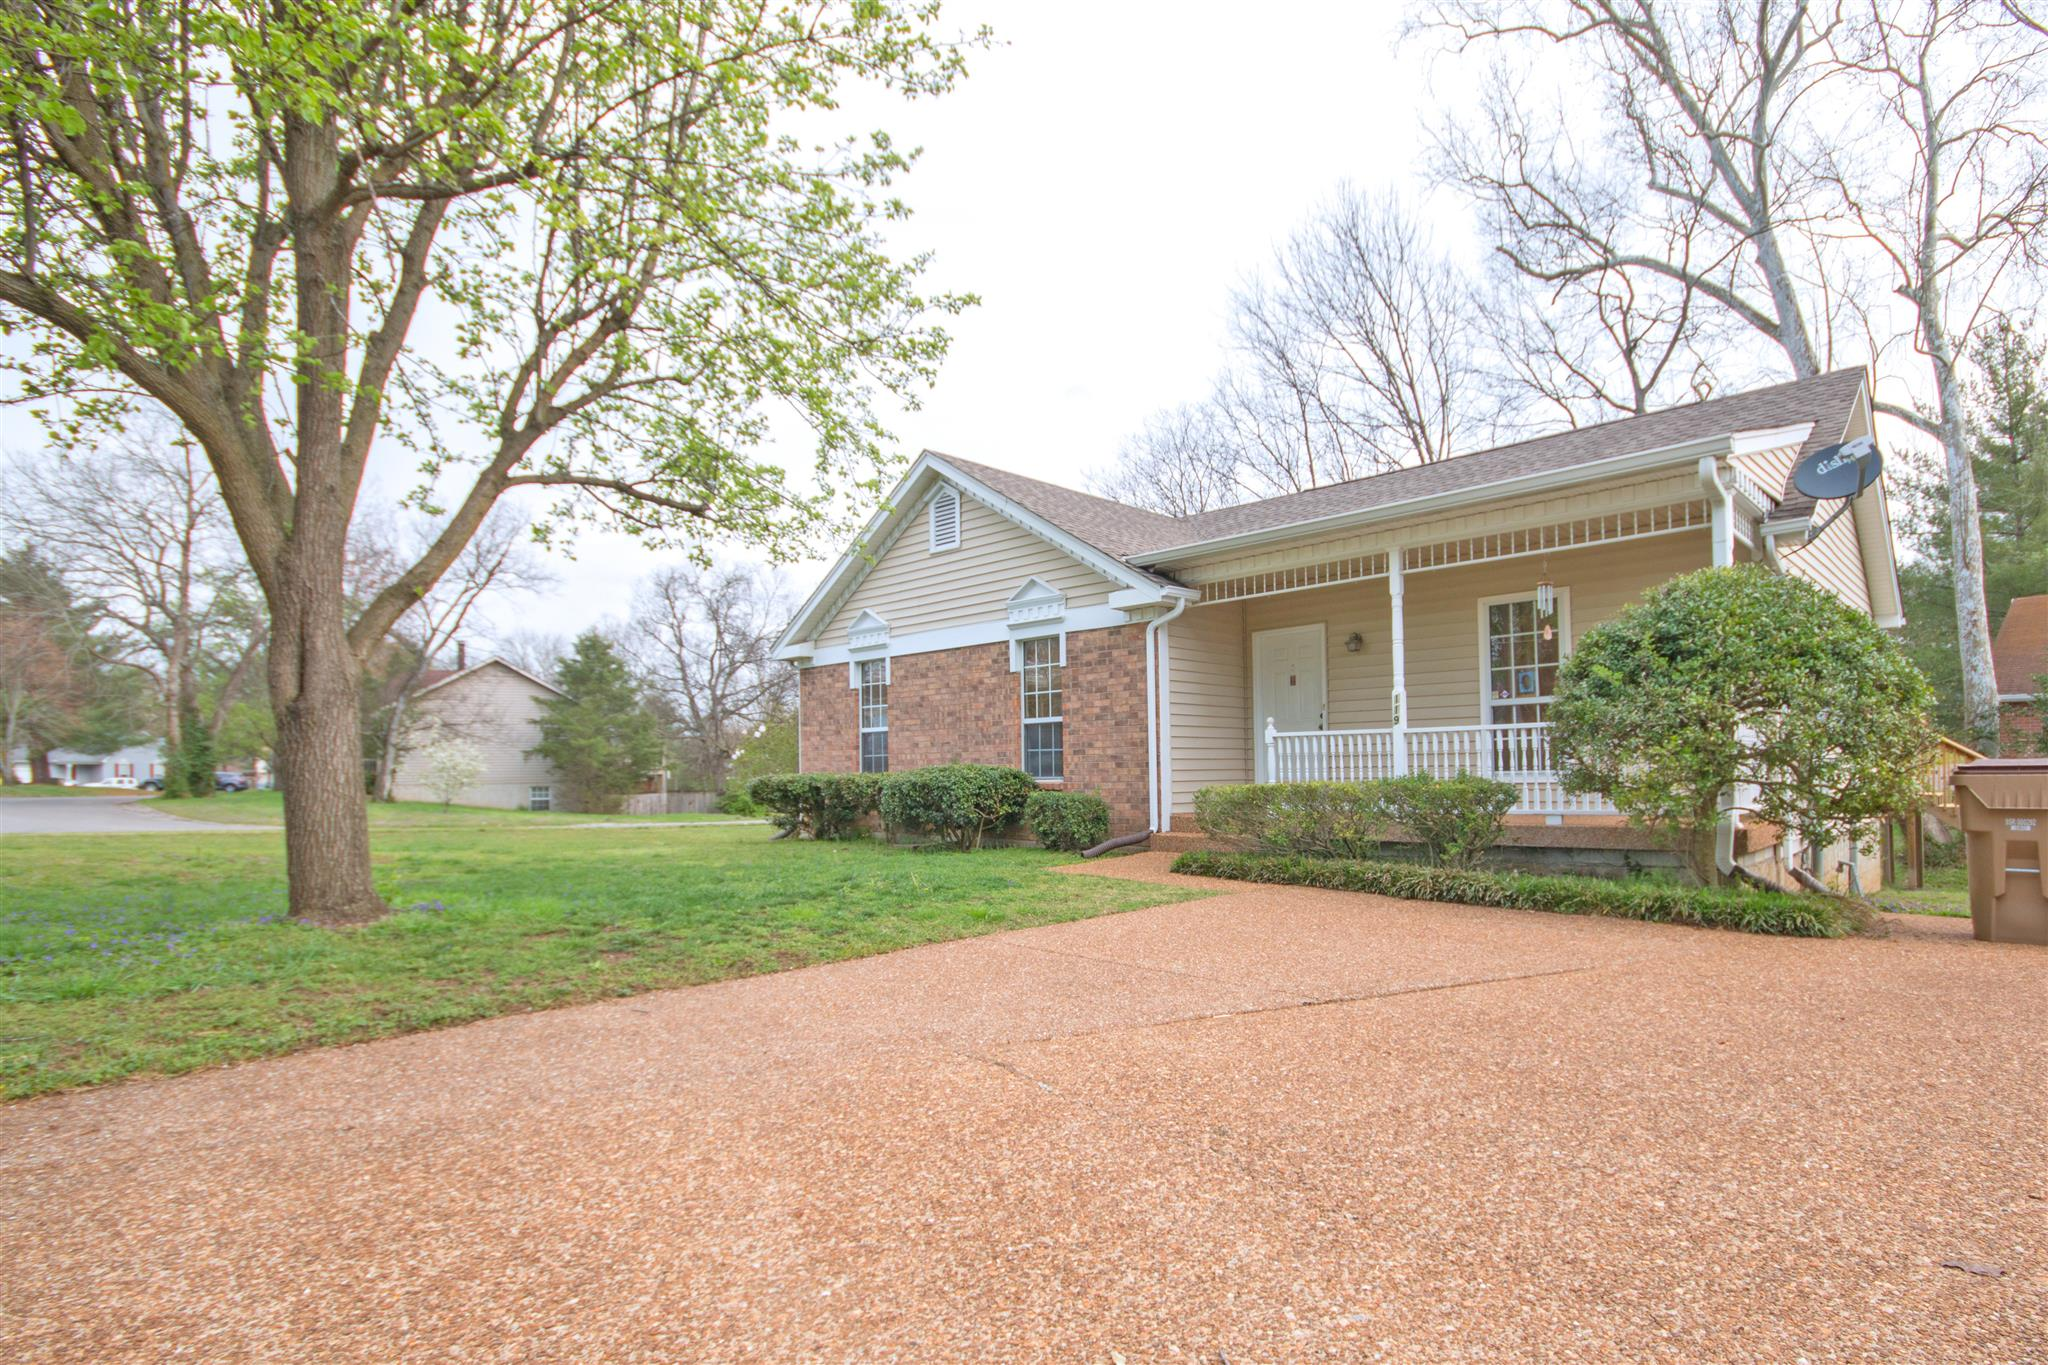 119 Welshwood Ct, Goodlettsville, TN, 37072 Primary Photo